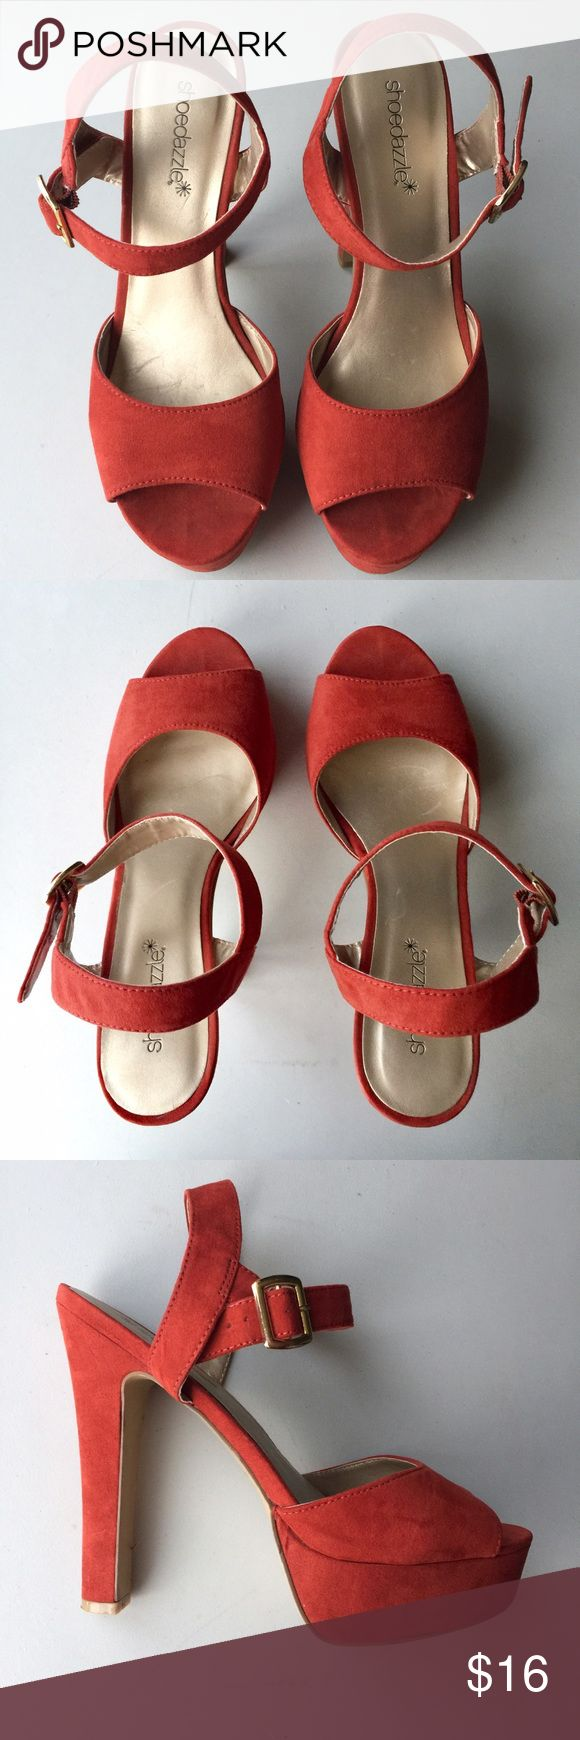 Shoe Dazzle red orange platform heels Gorgeous, strappy heels are a burnt orange color. Soft texture on the straps. They have some wear on the sole but are otherwise in great condition. Stylish, beautiful shoes! Shoe Dazzle Shoes Heels